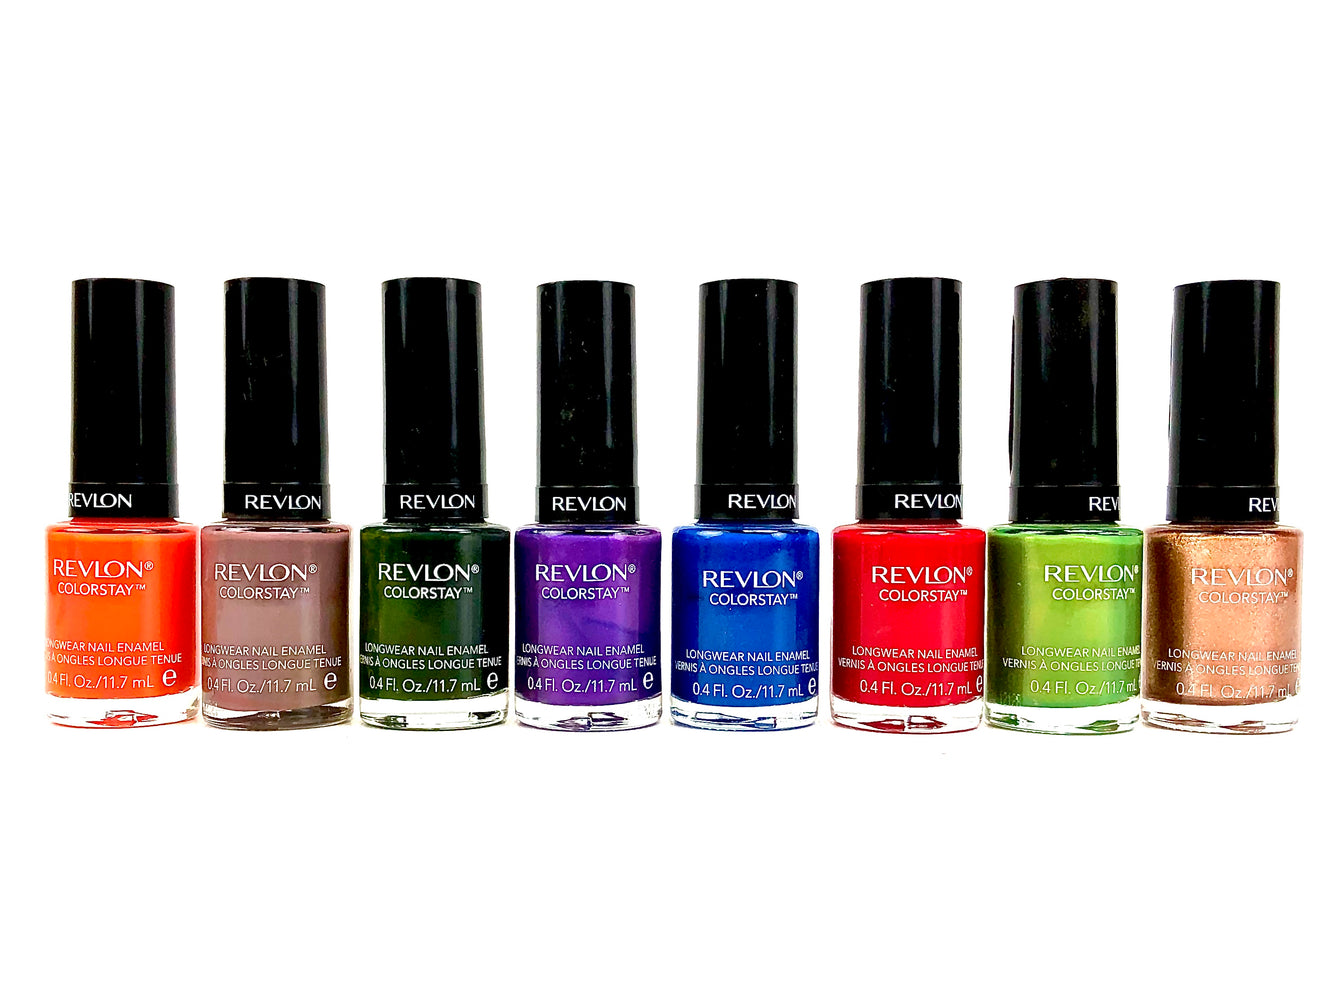 Revlon Colorstay Nail Polish, Assorted Colors (50 Pcs Per Case)